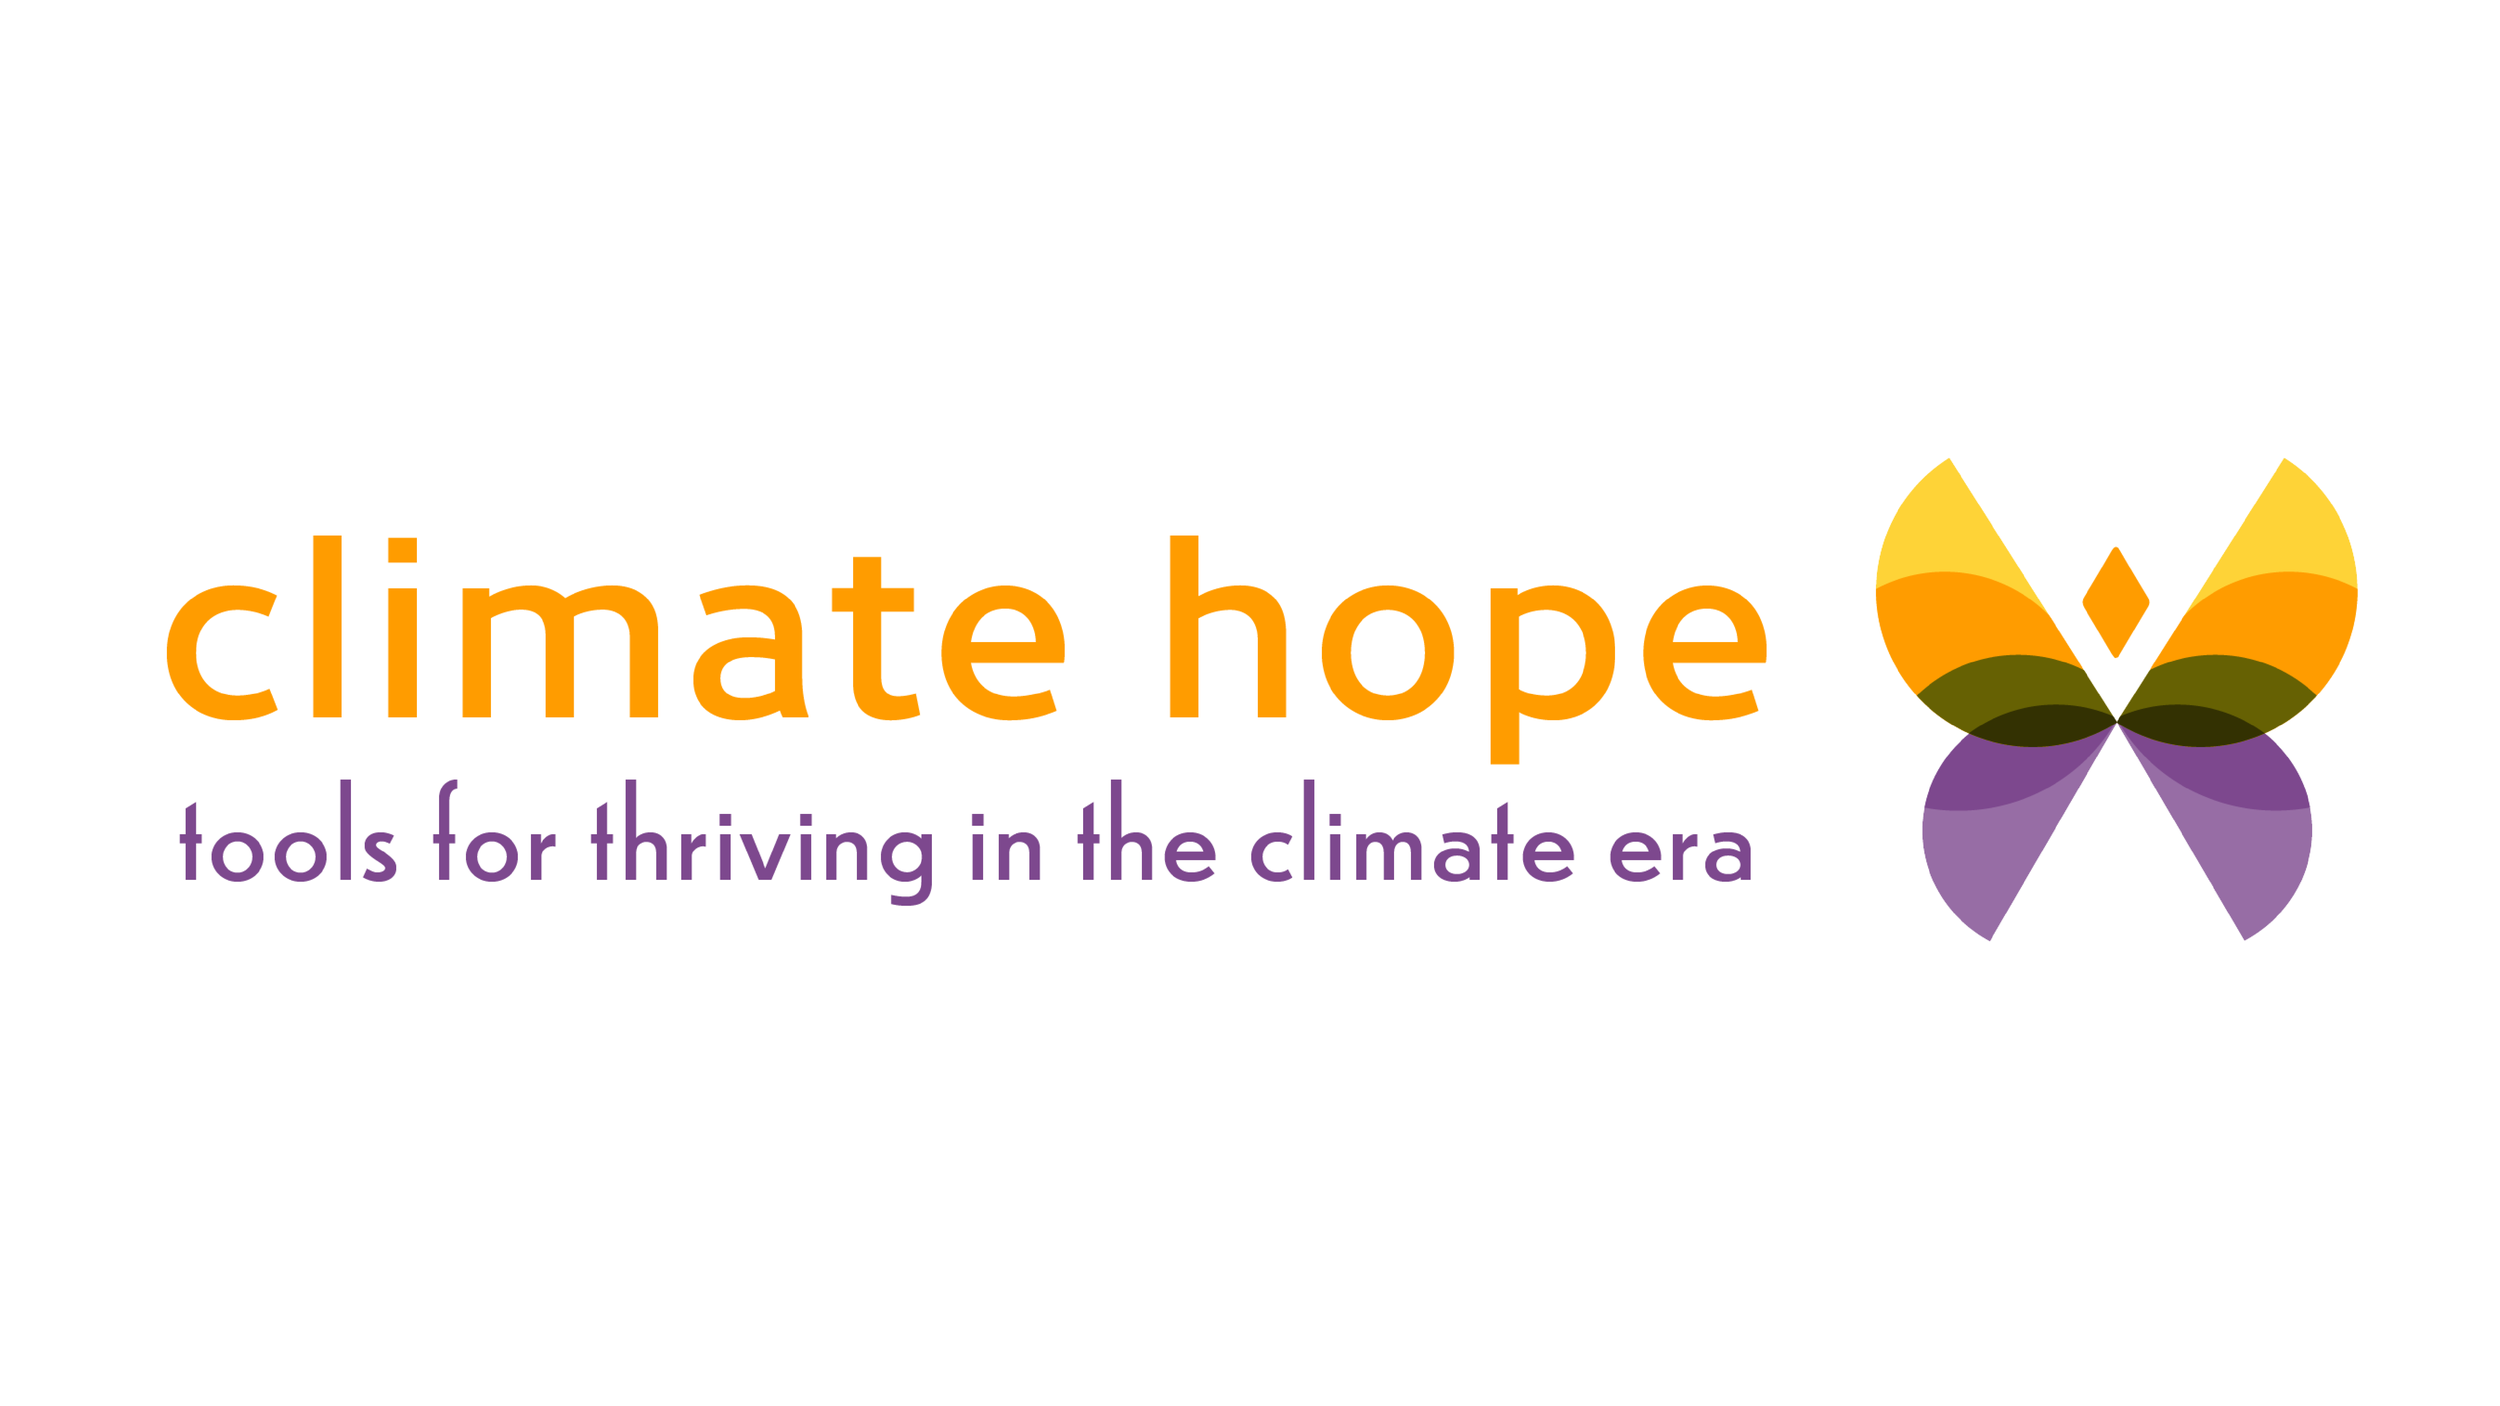 climatehope-01.png